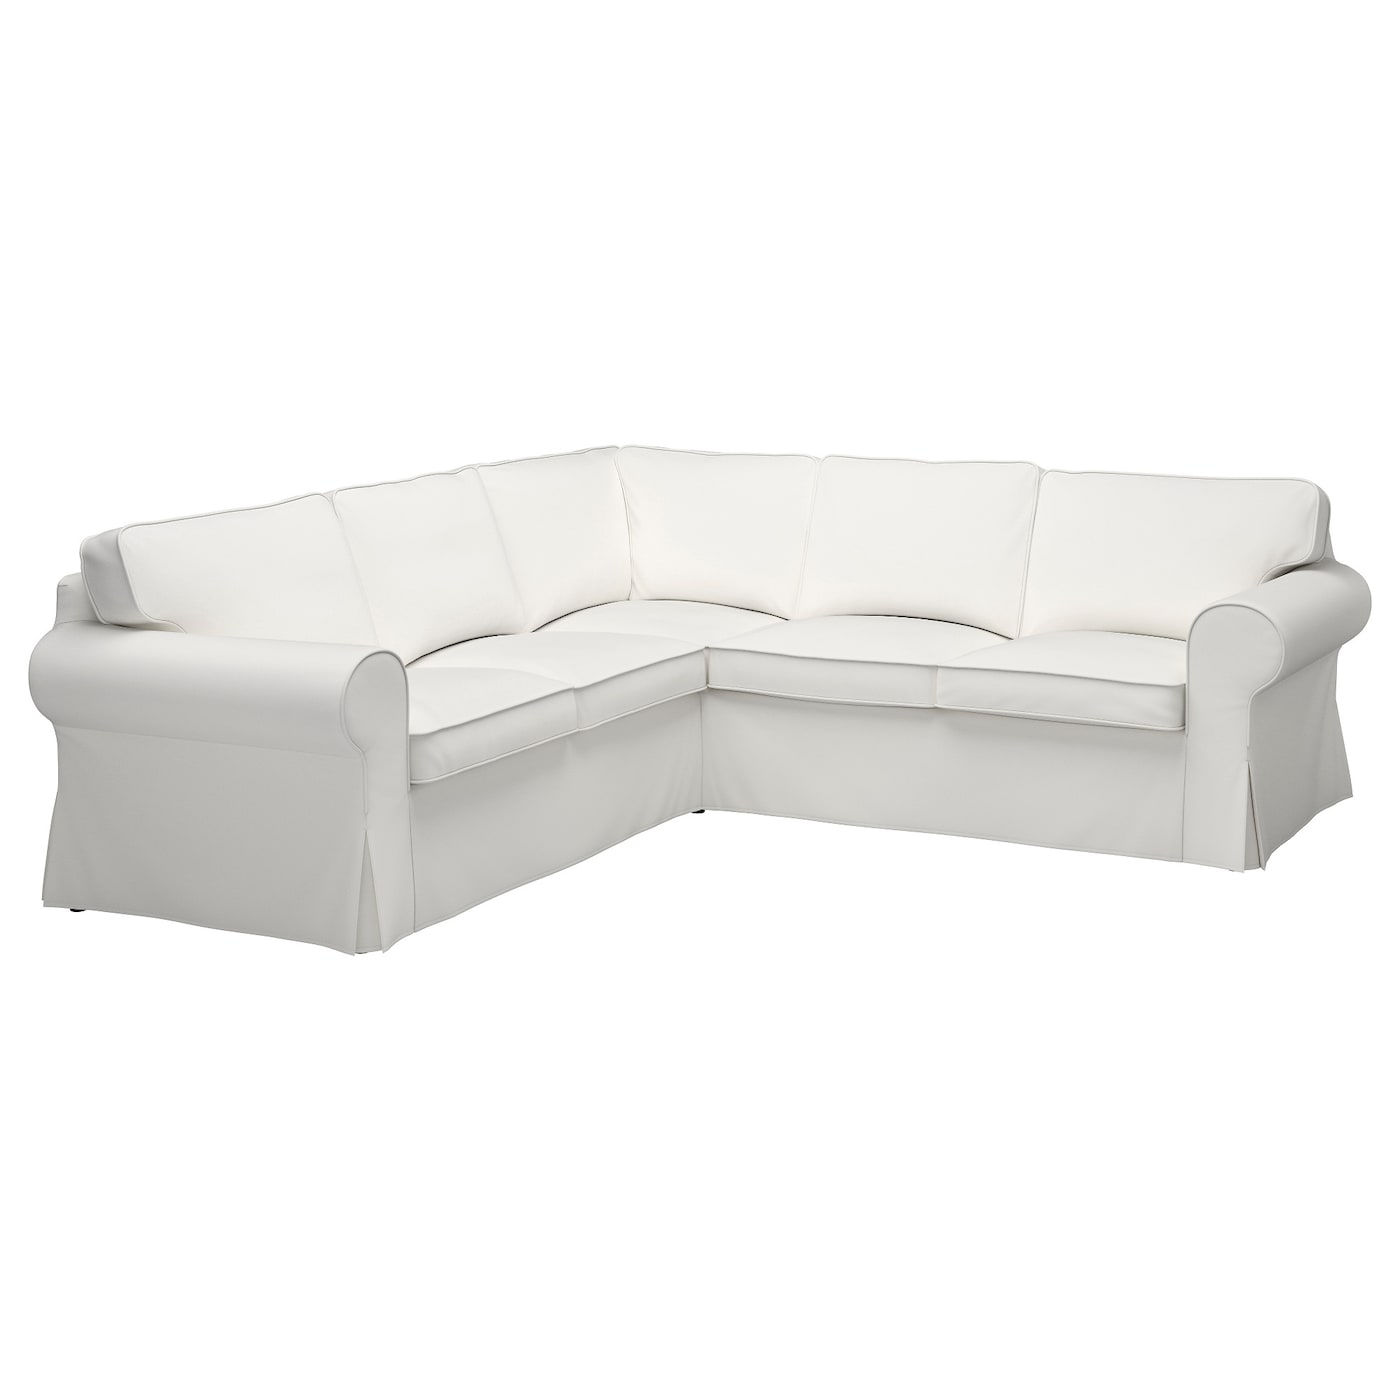 Rp Sectional 4 Seat Corner